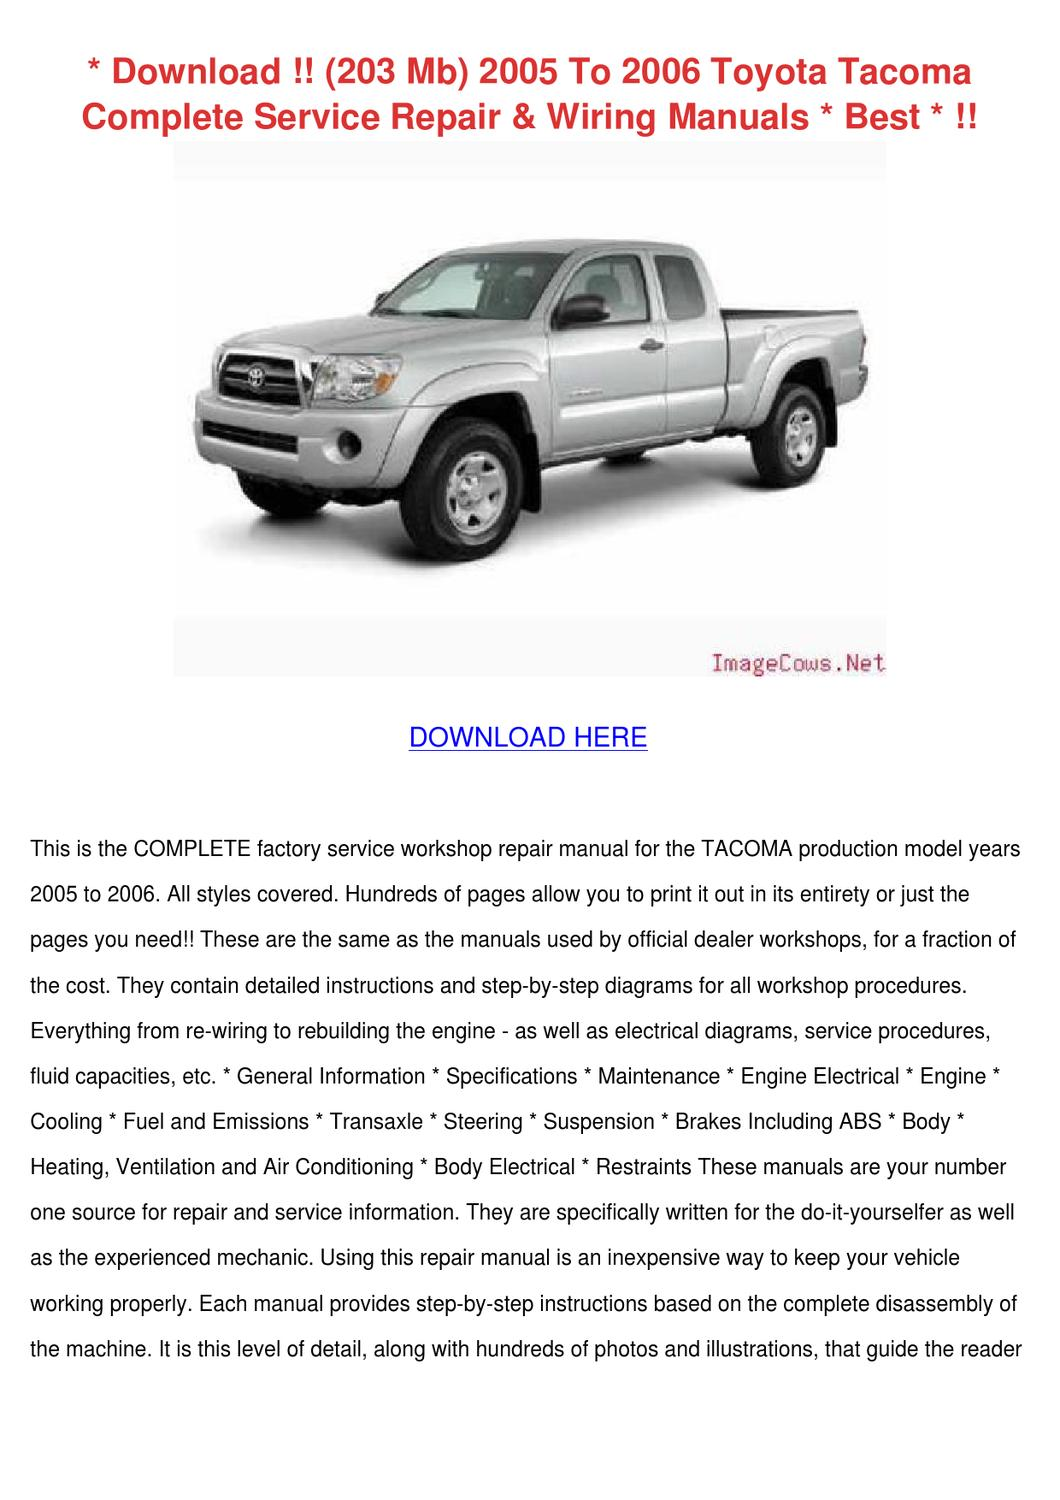 2005 toyota tacoma factory service manual download